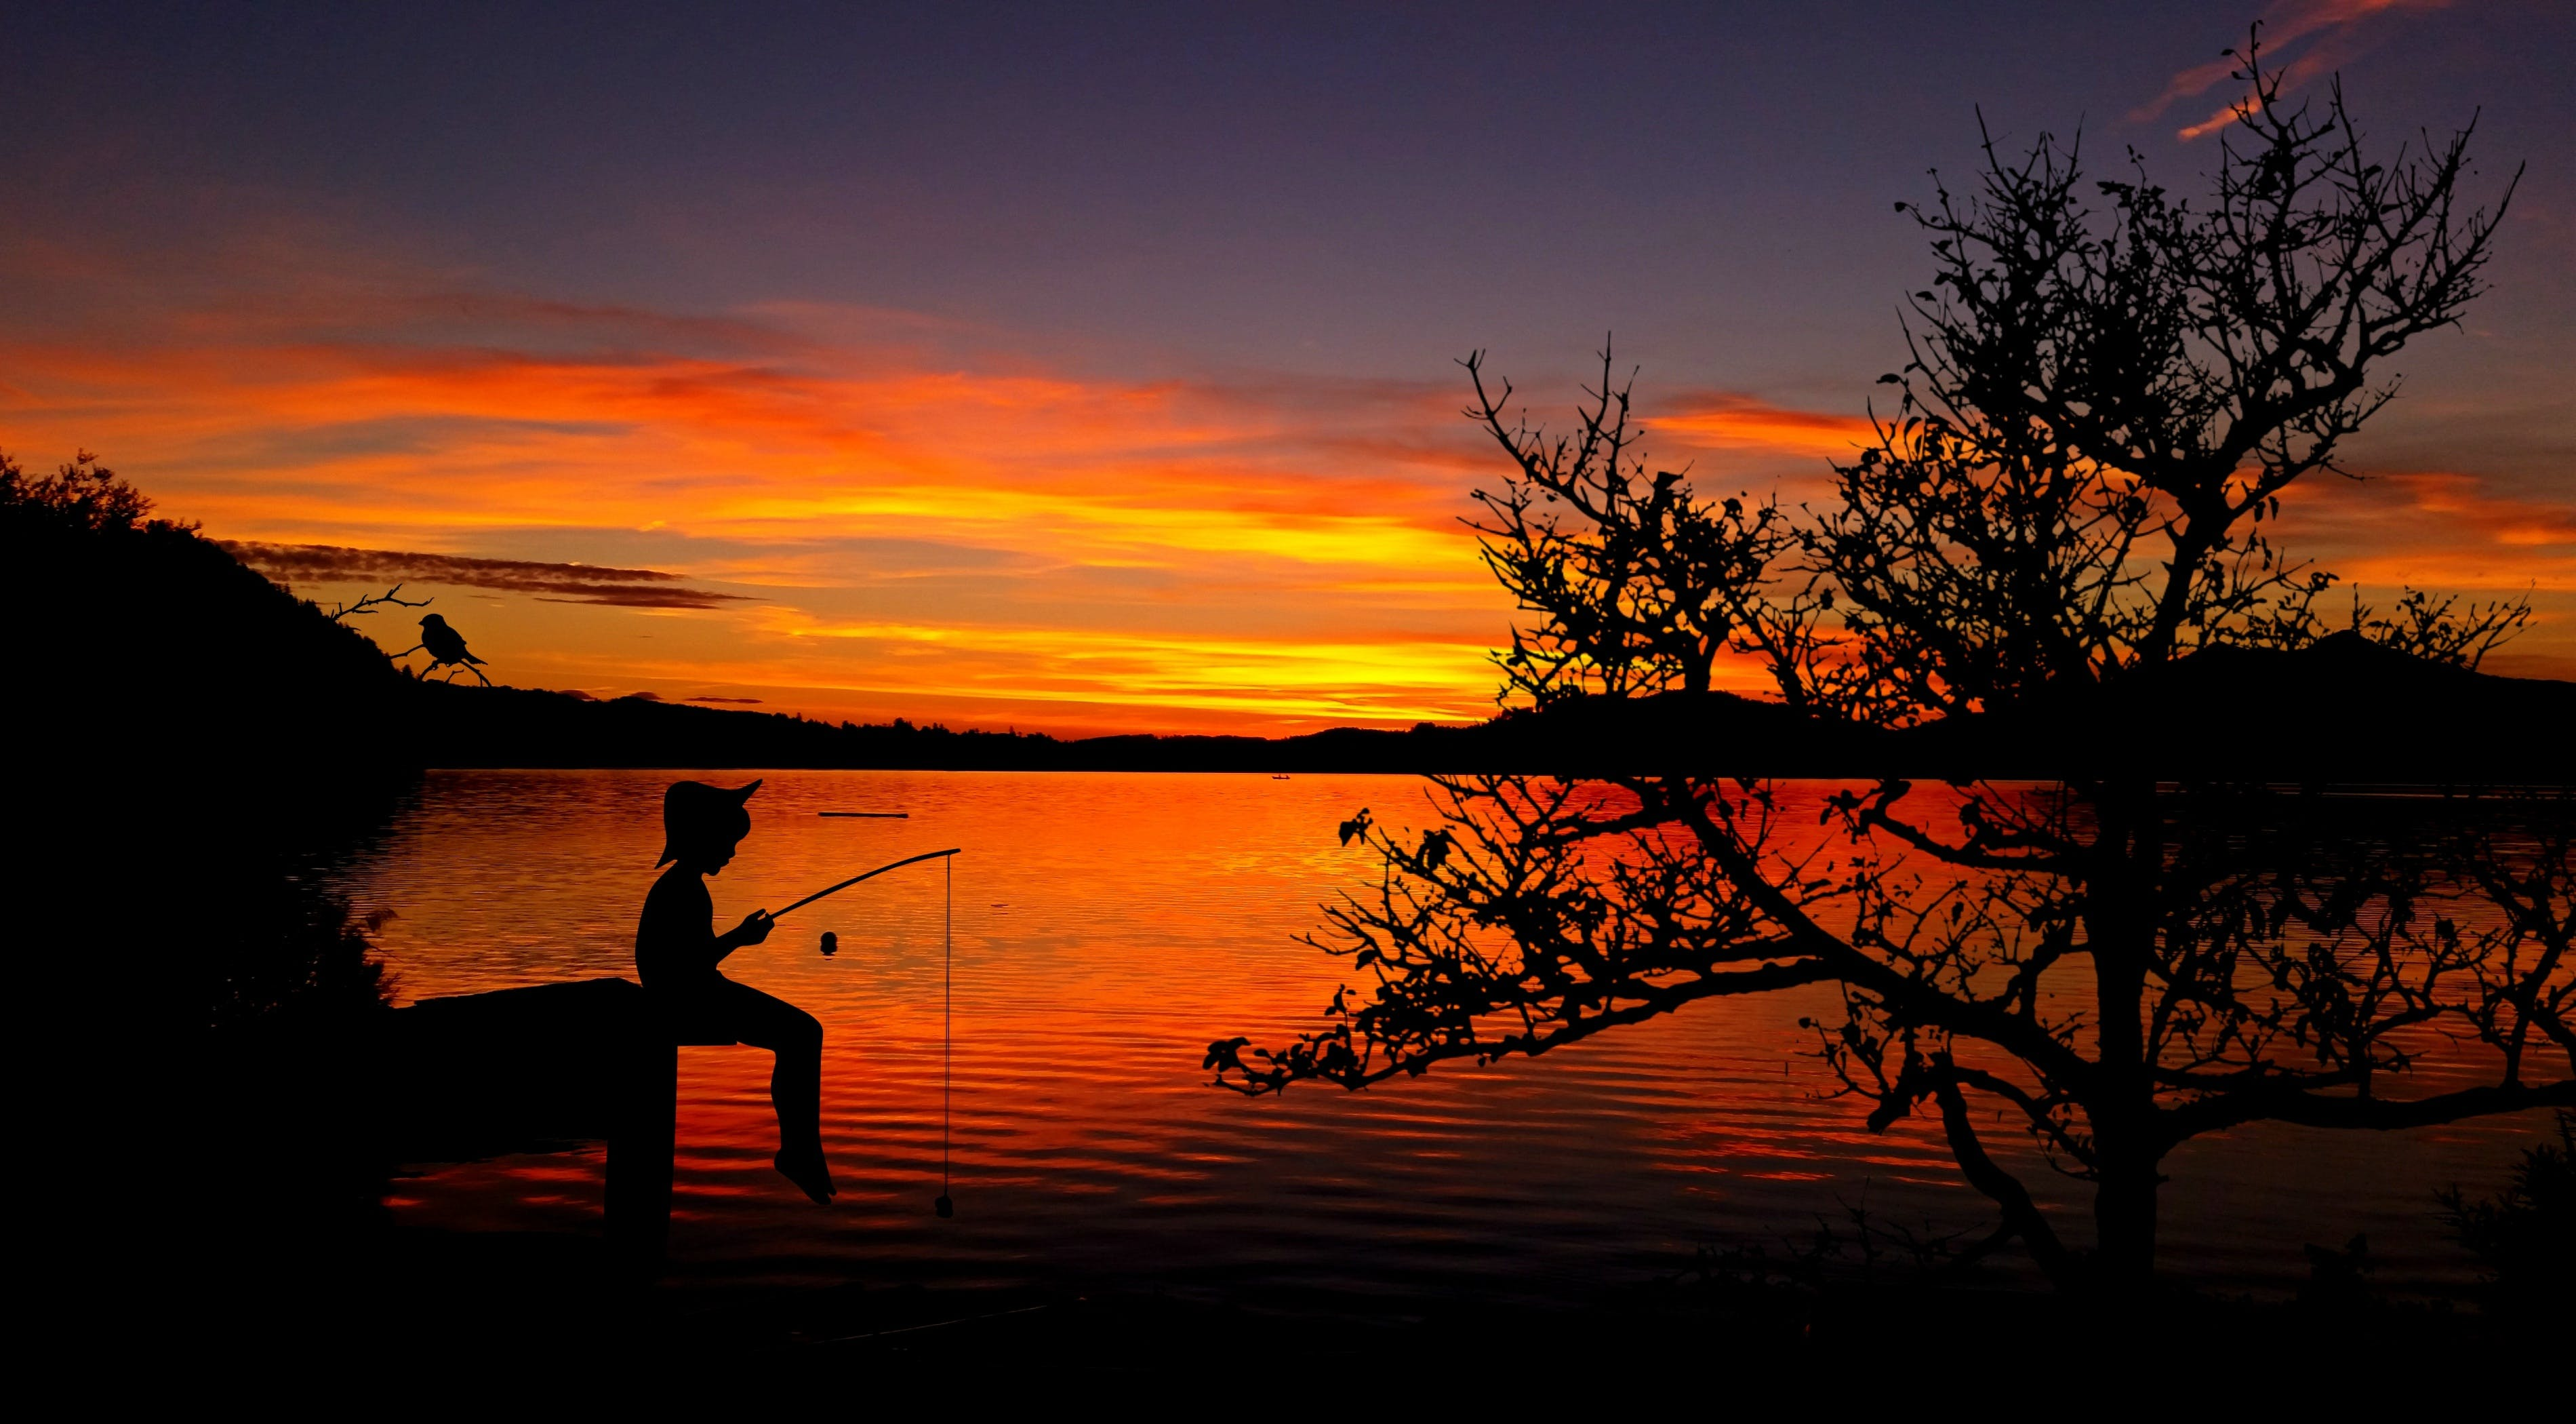 Silhouette of Person Fishing